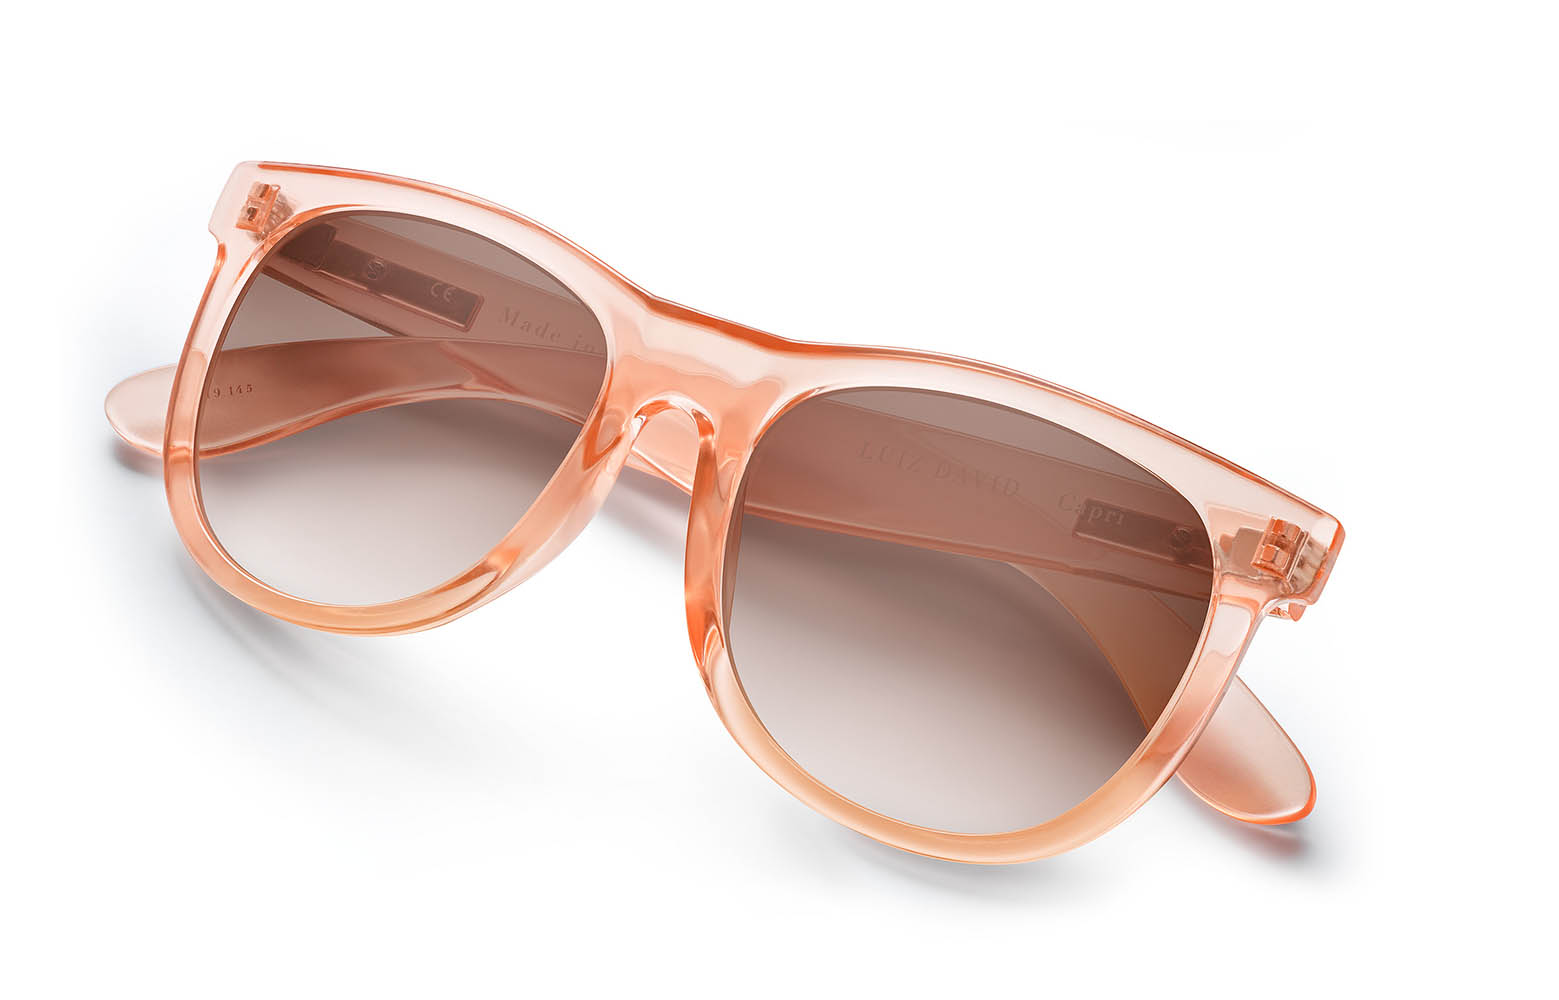 sunglasses_eyewear_pink